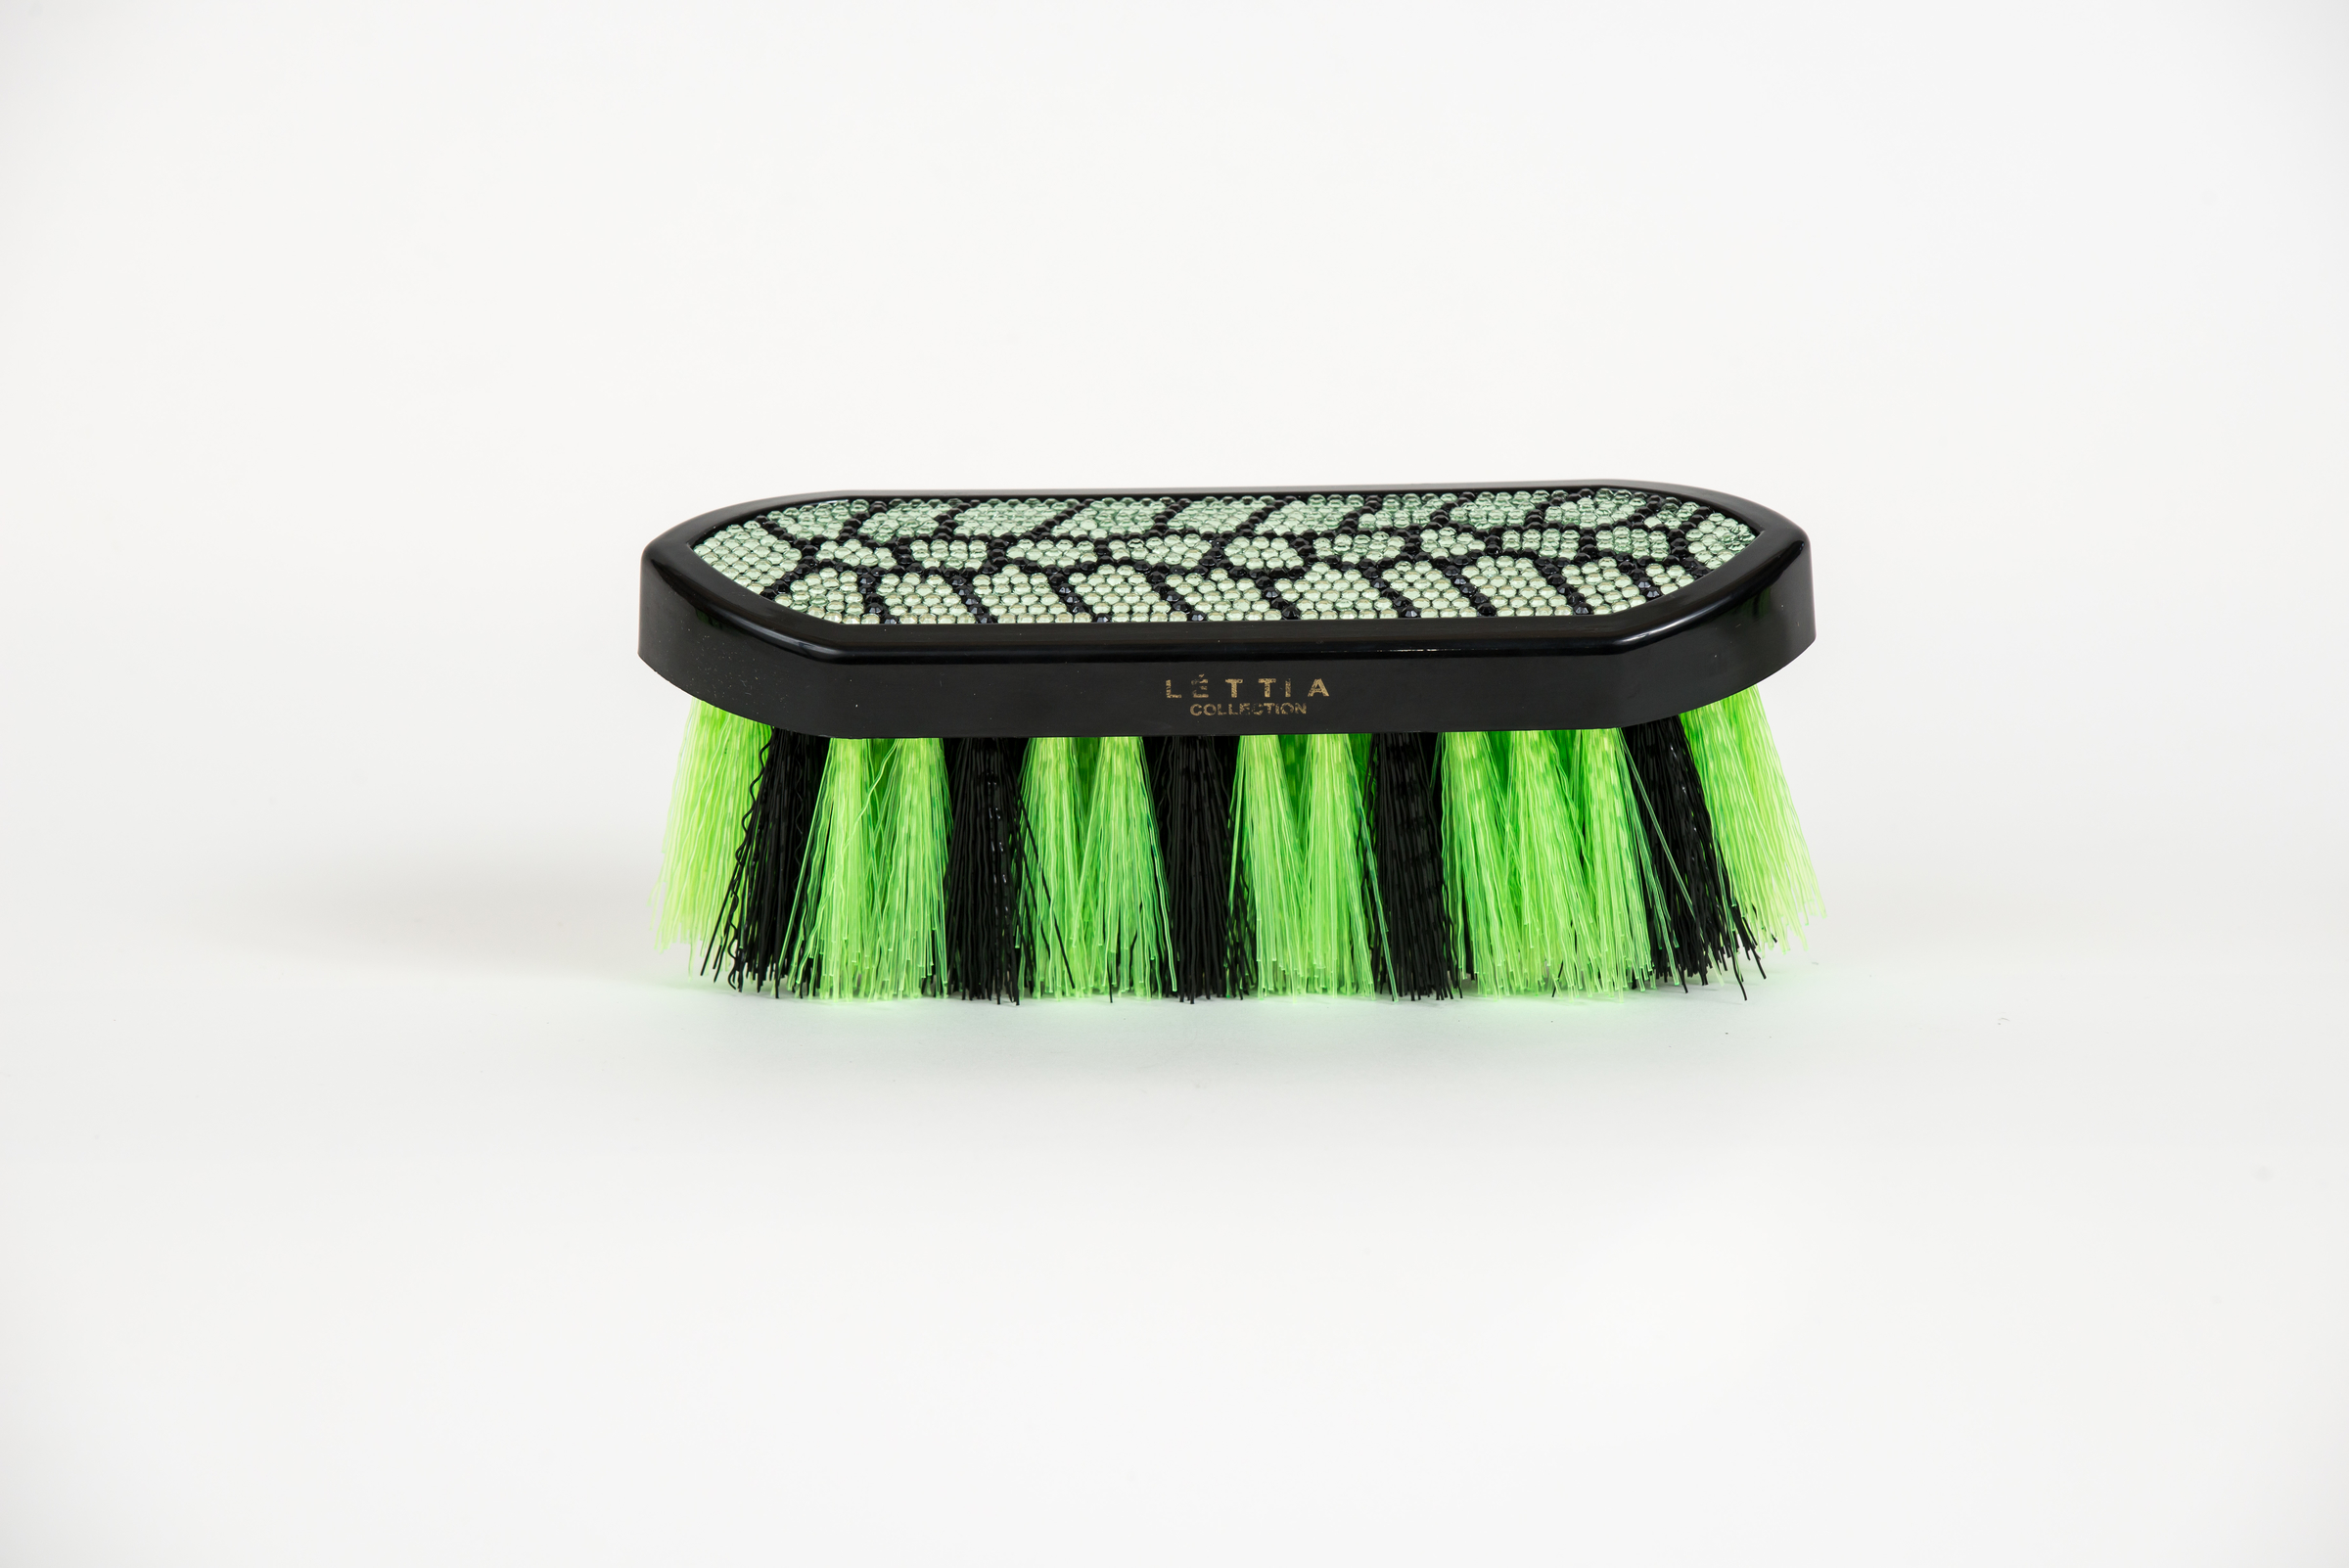 Lettia Collection Dandy Brush - Crystal Turtle